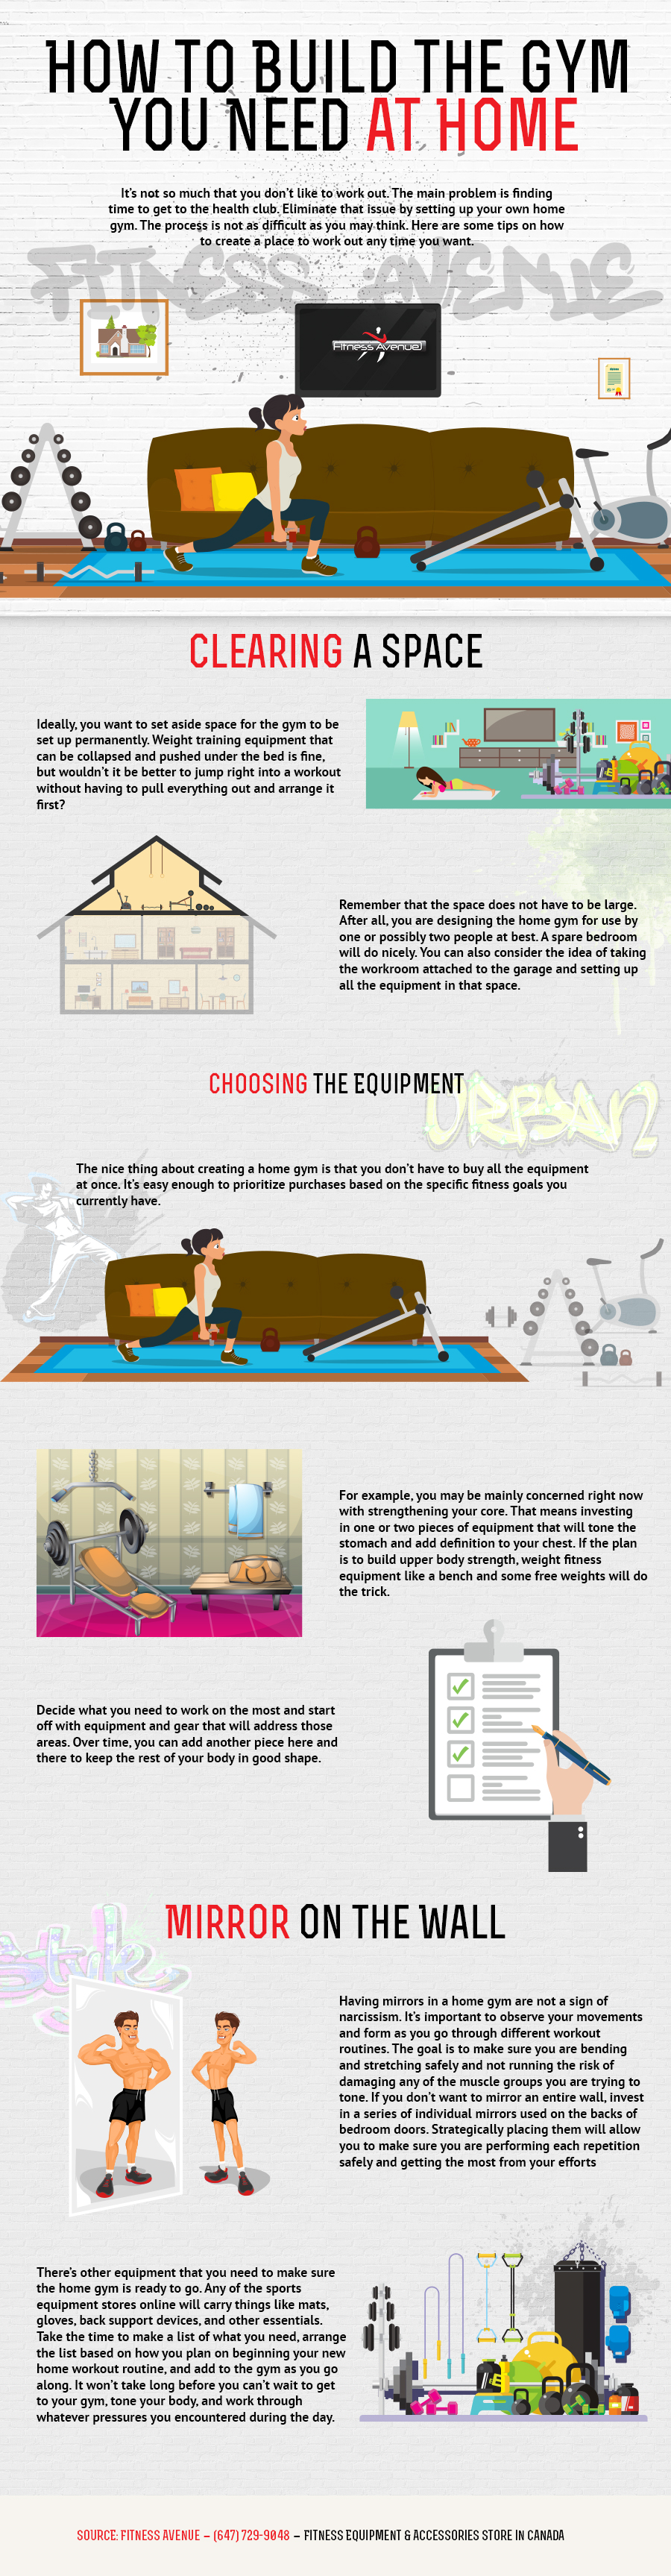 How to Build a Home Gym from Scratch: It's Easier Than You Thought! - Infographic